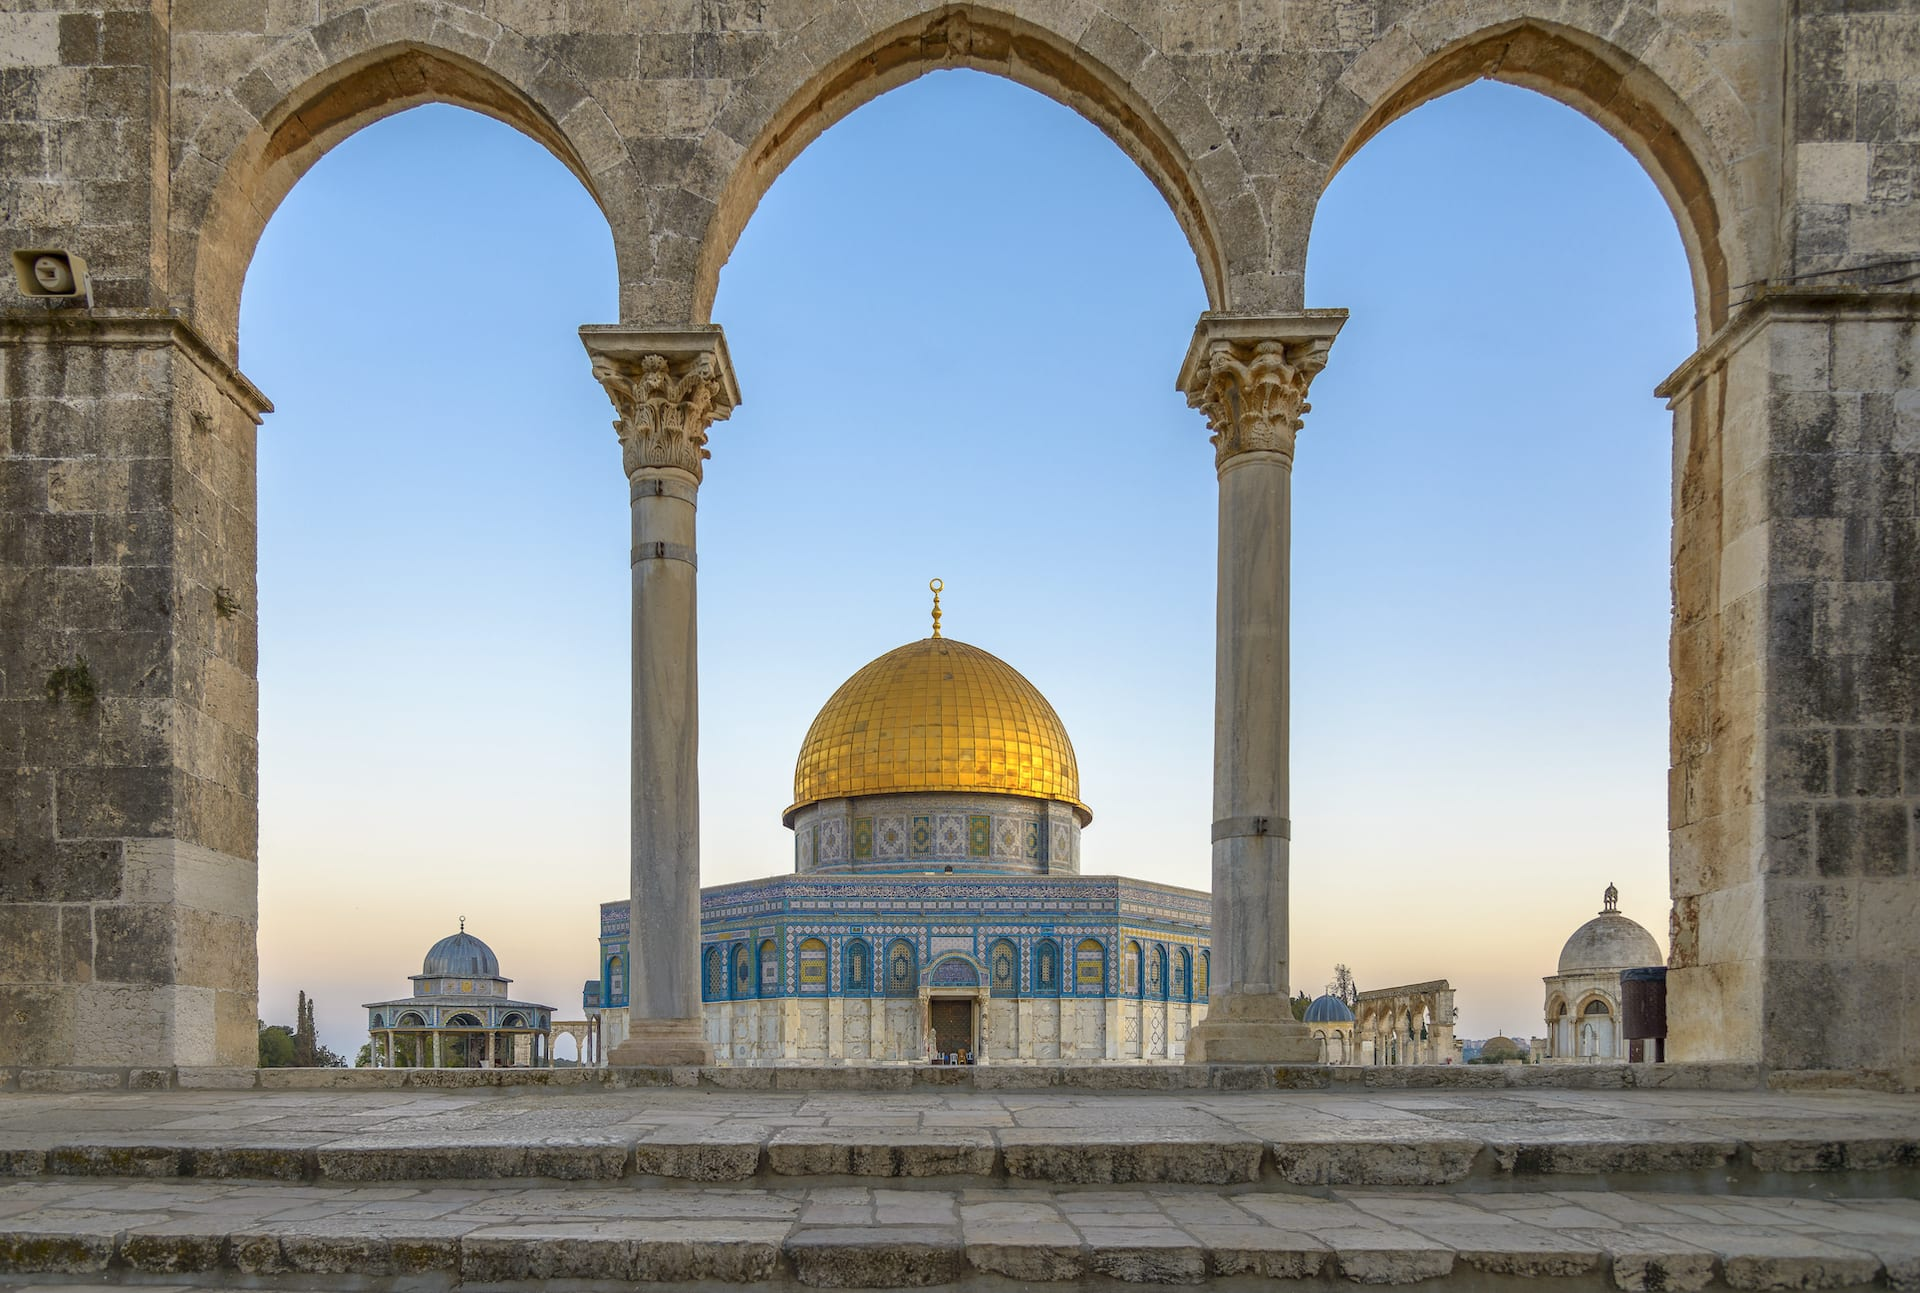 Picture of the Dome of the rock in Jerusalem through Crusader Archways